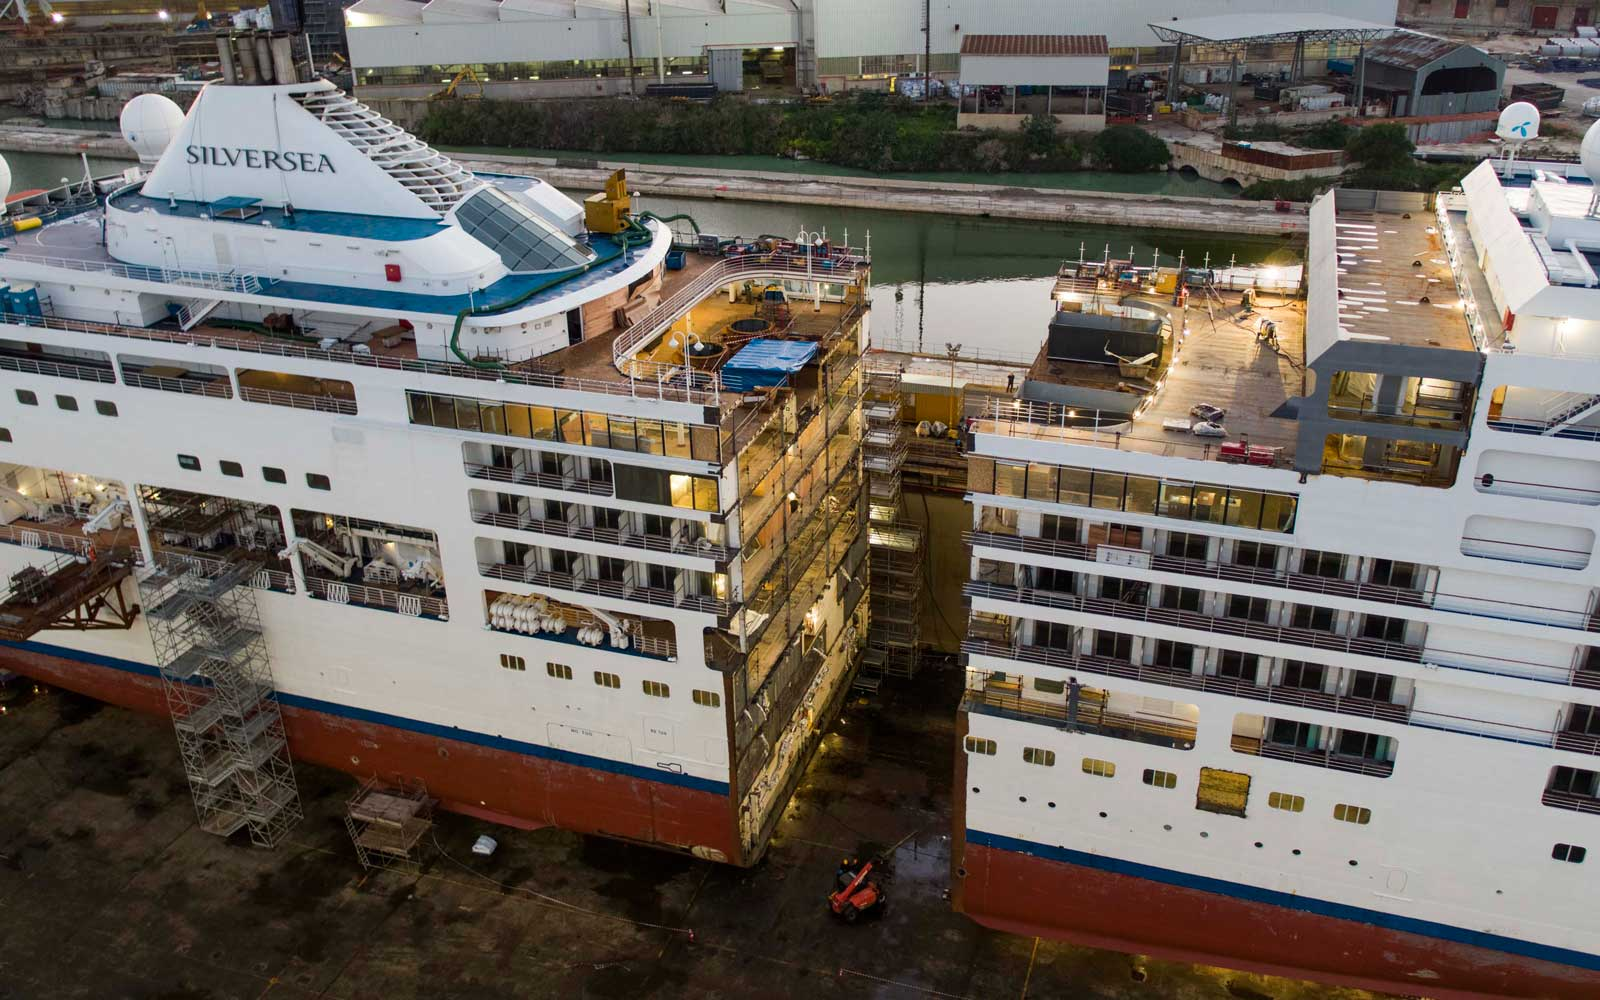 Silversea Spirit Cruise Ship being lengthened at dock